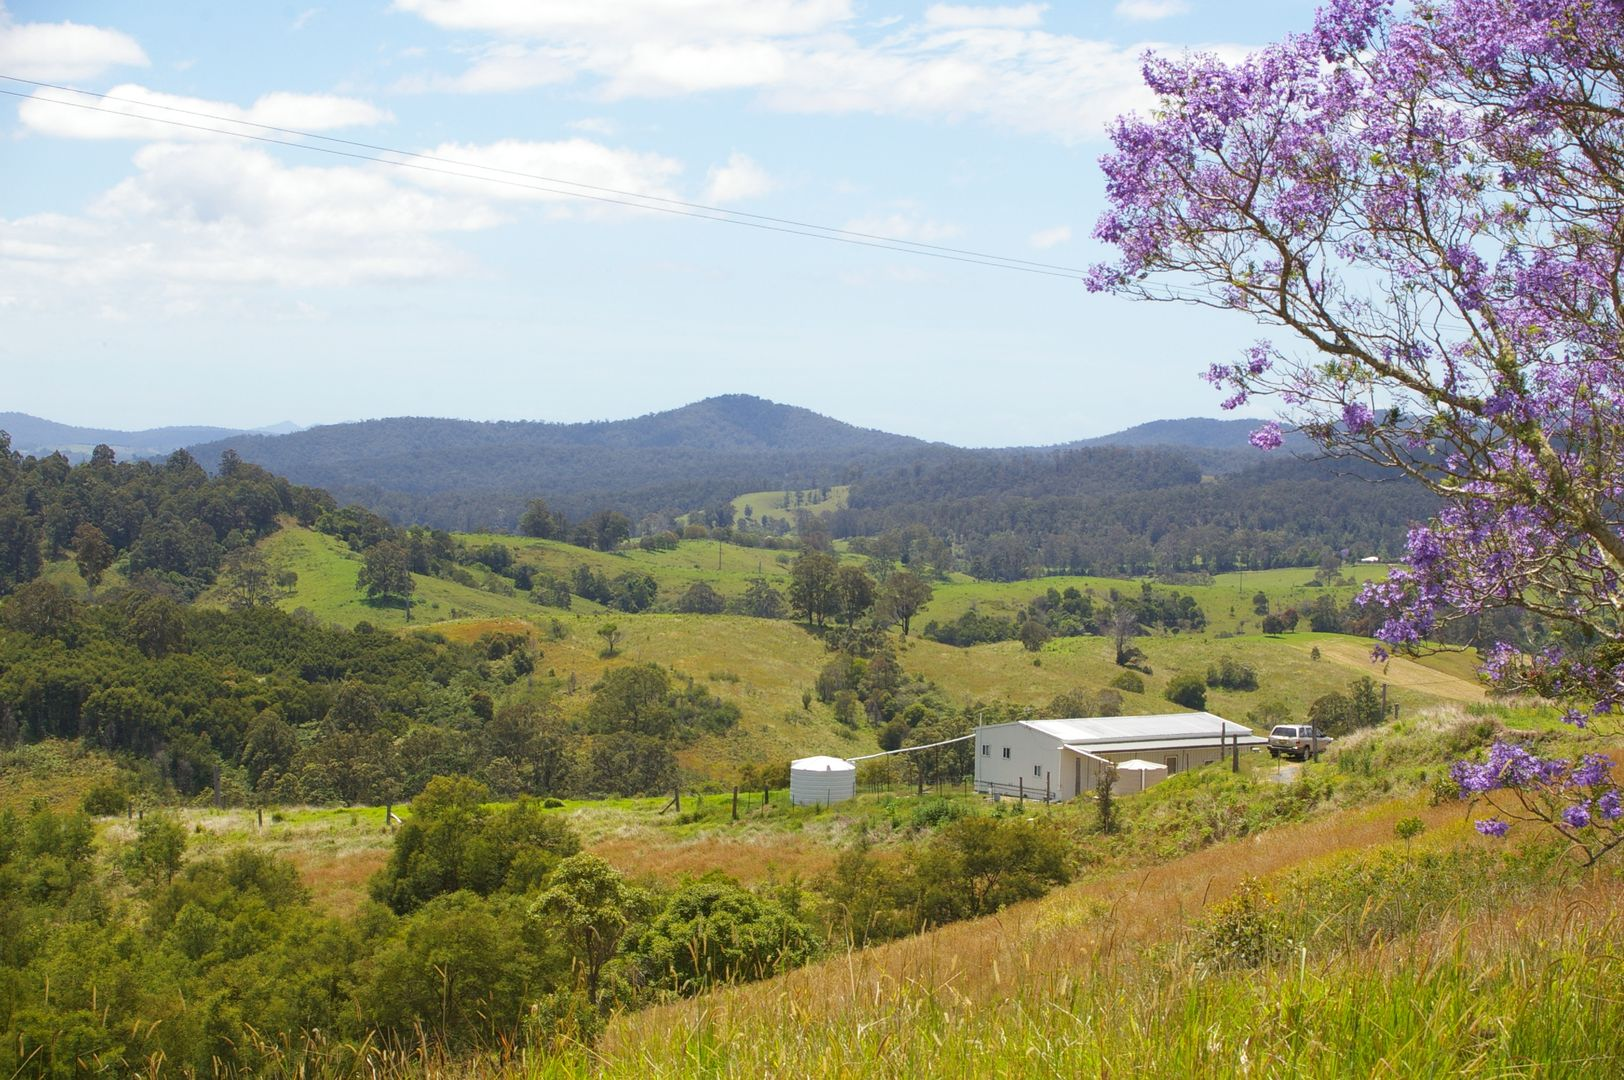 Lot 1,2,3/802 Bakers Creek Rd, Taylors Arm NSW 2447, Image 0